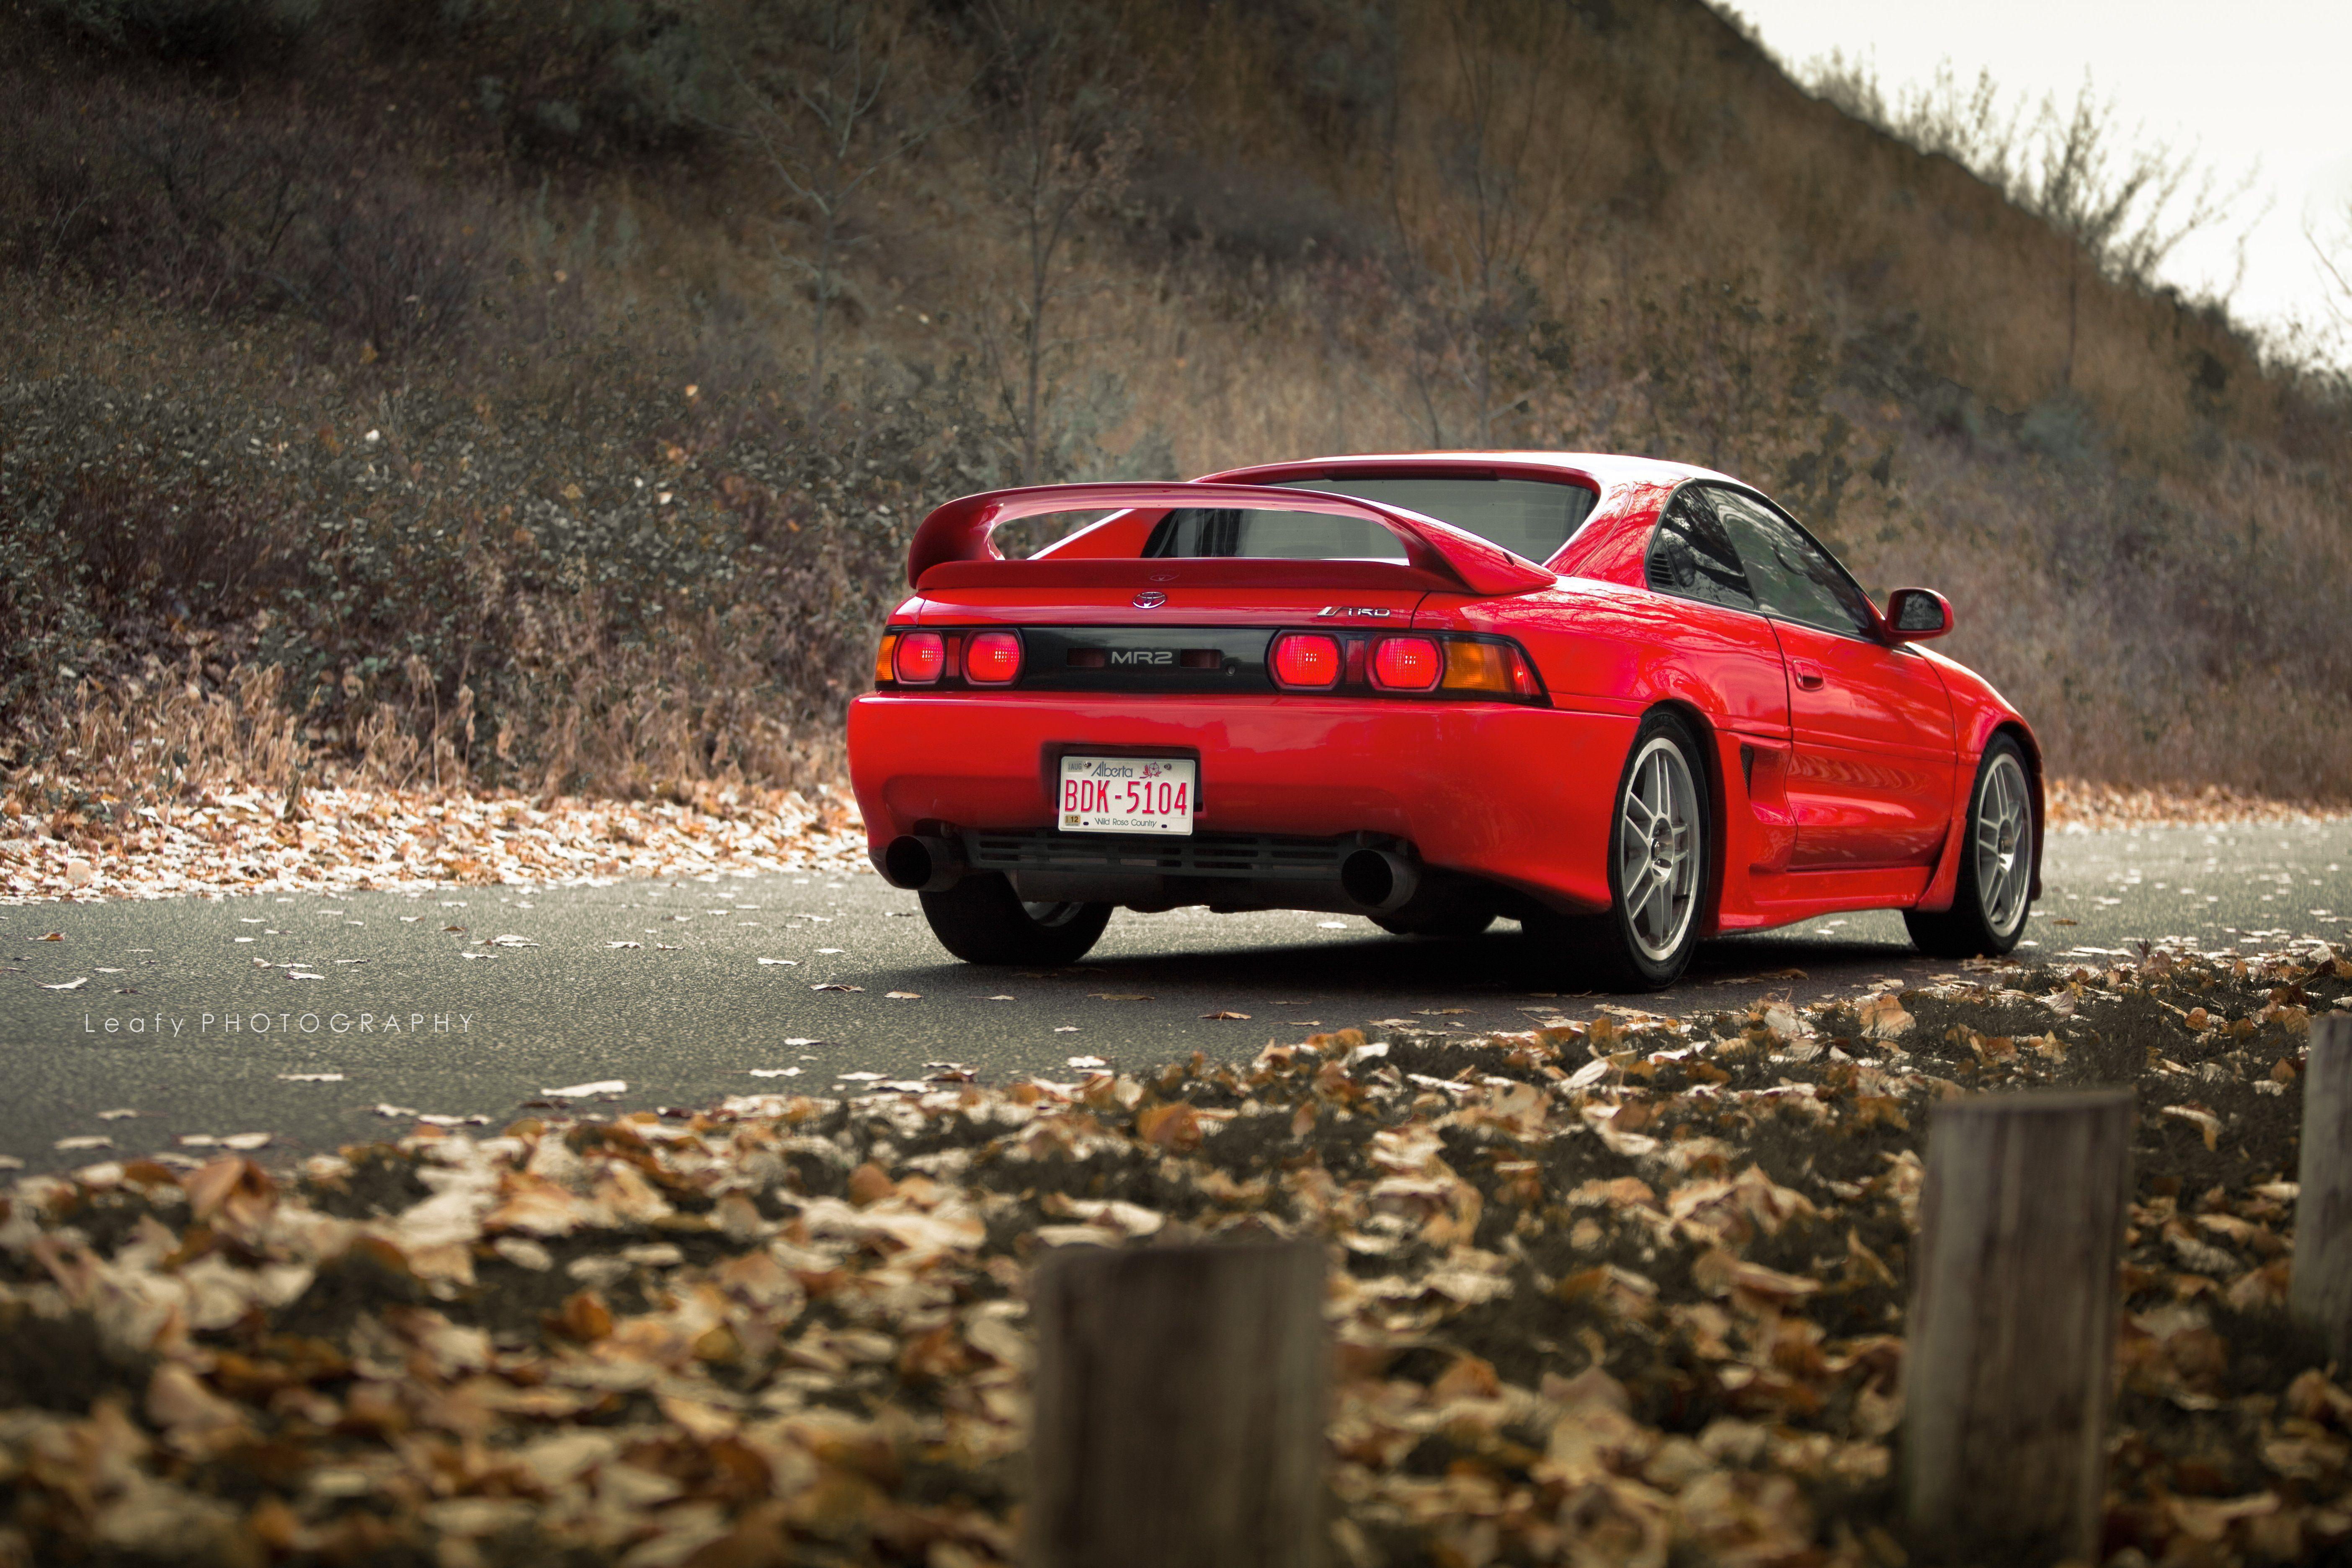 Toyota MR2 coupe spider japan tuning cars wallpapers